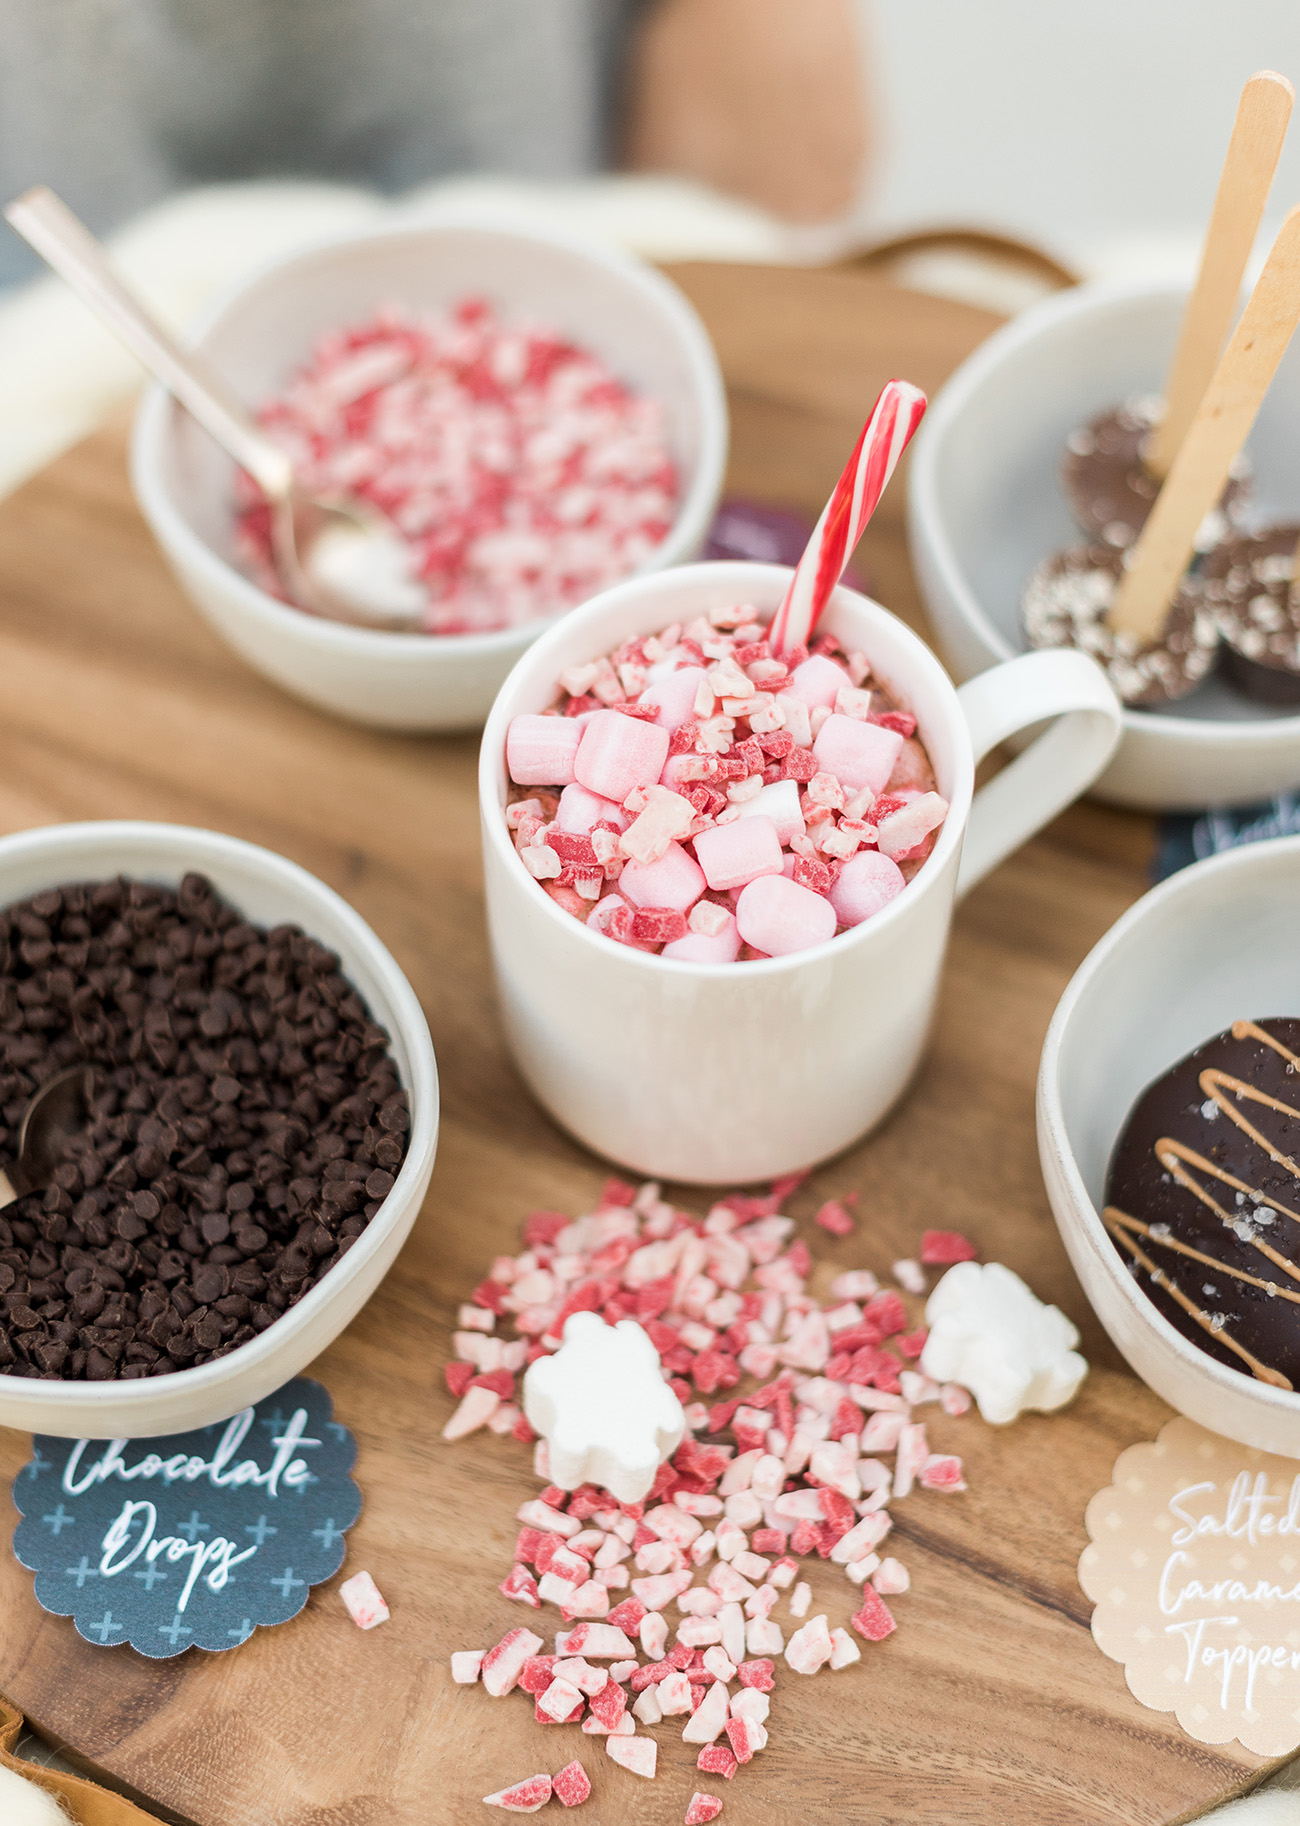 Hot Cocoa with Peppermint DIY